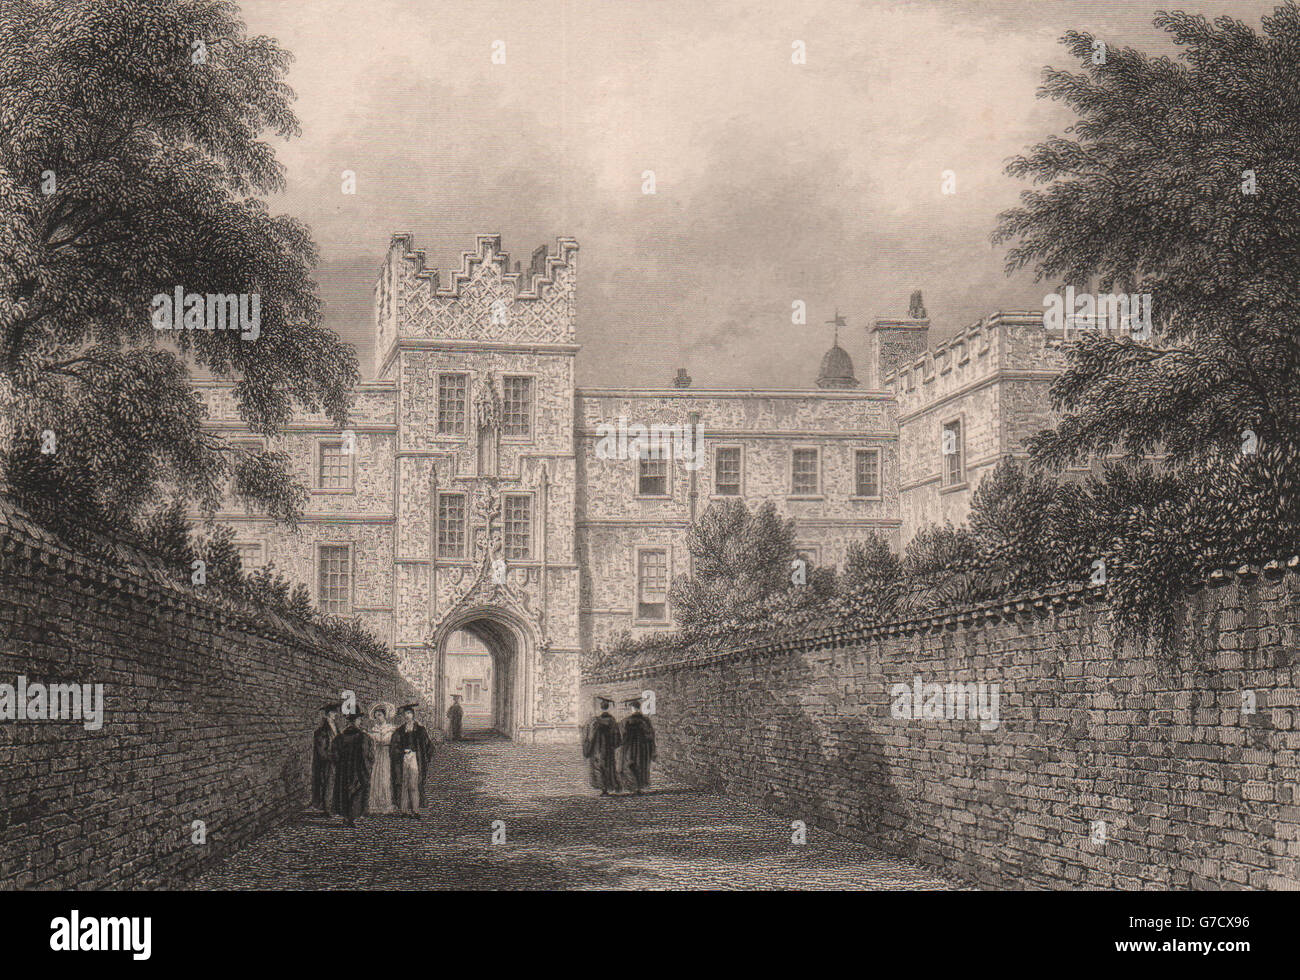 JESUS COLLEGE. The entrance Gateway, Cambridge. LE KEUX, antique print 1841 - Stock Image